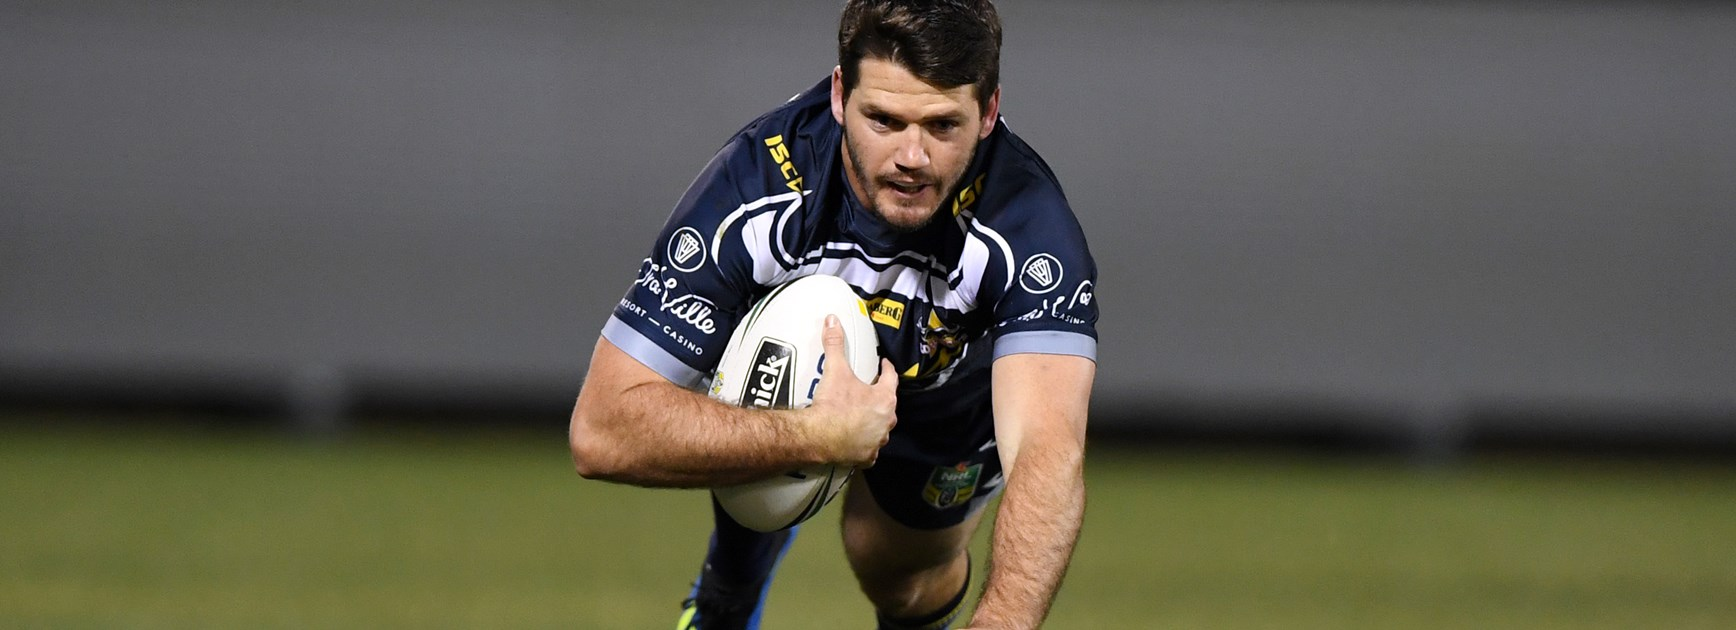 Season review: Lachlan Coote